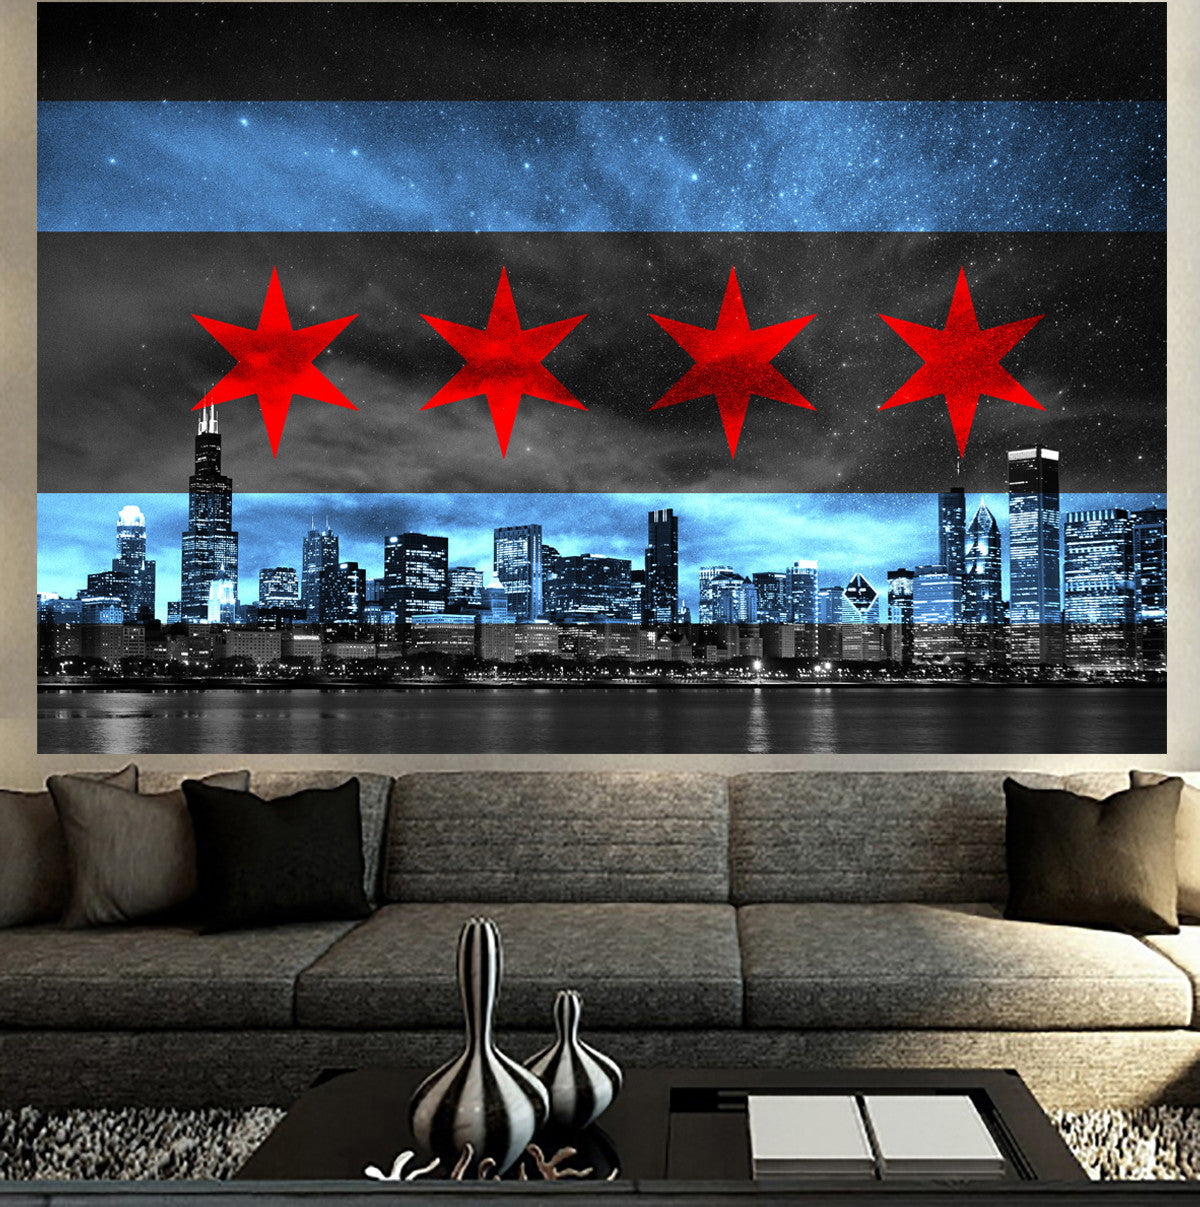 chicago skyline flag glow wall graphic zapwalls zapwalls decals chicago skyline flag glow wall graphic